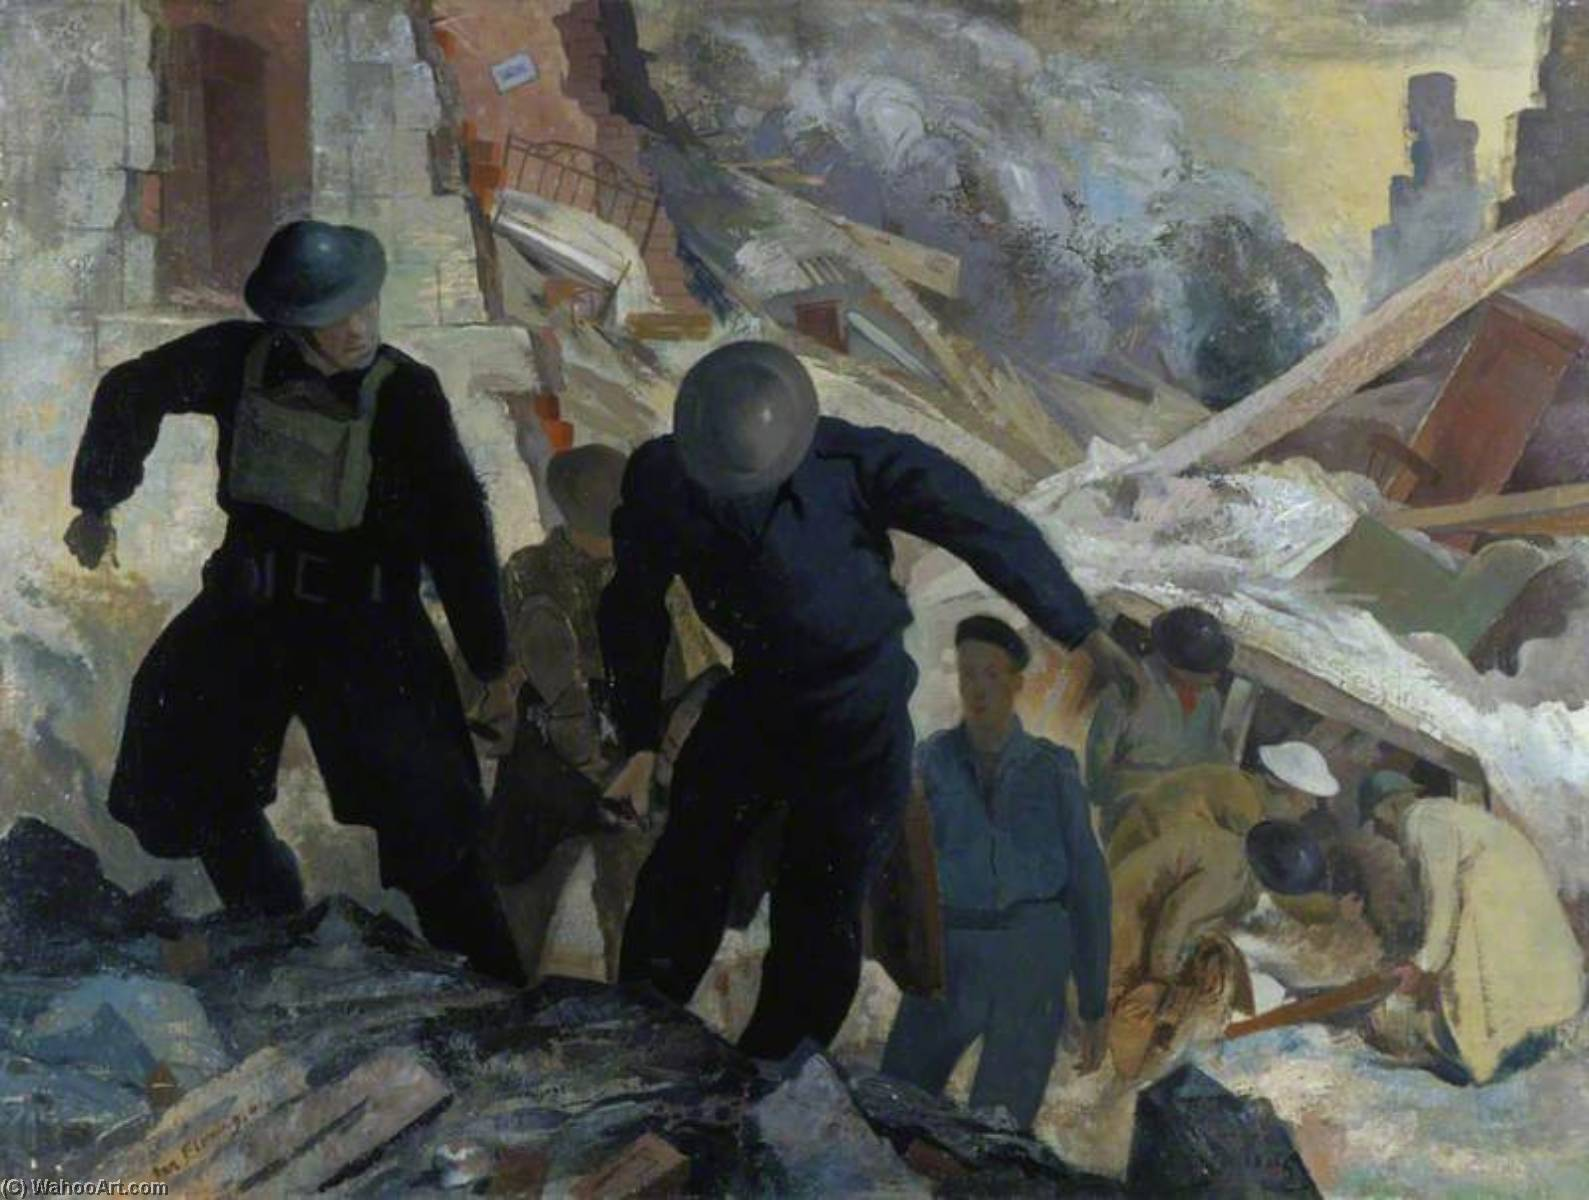 Order Paintings Reproductions | Rescue Party, Kilmun Street (Maryhill, Glasgow), 1941 by Ian Fleming | WahooArt.com